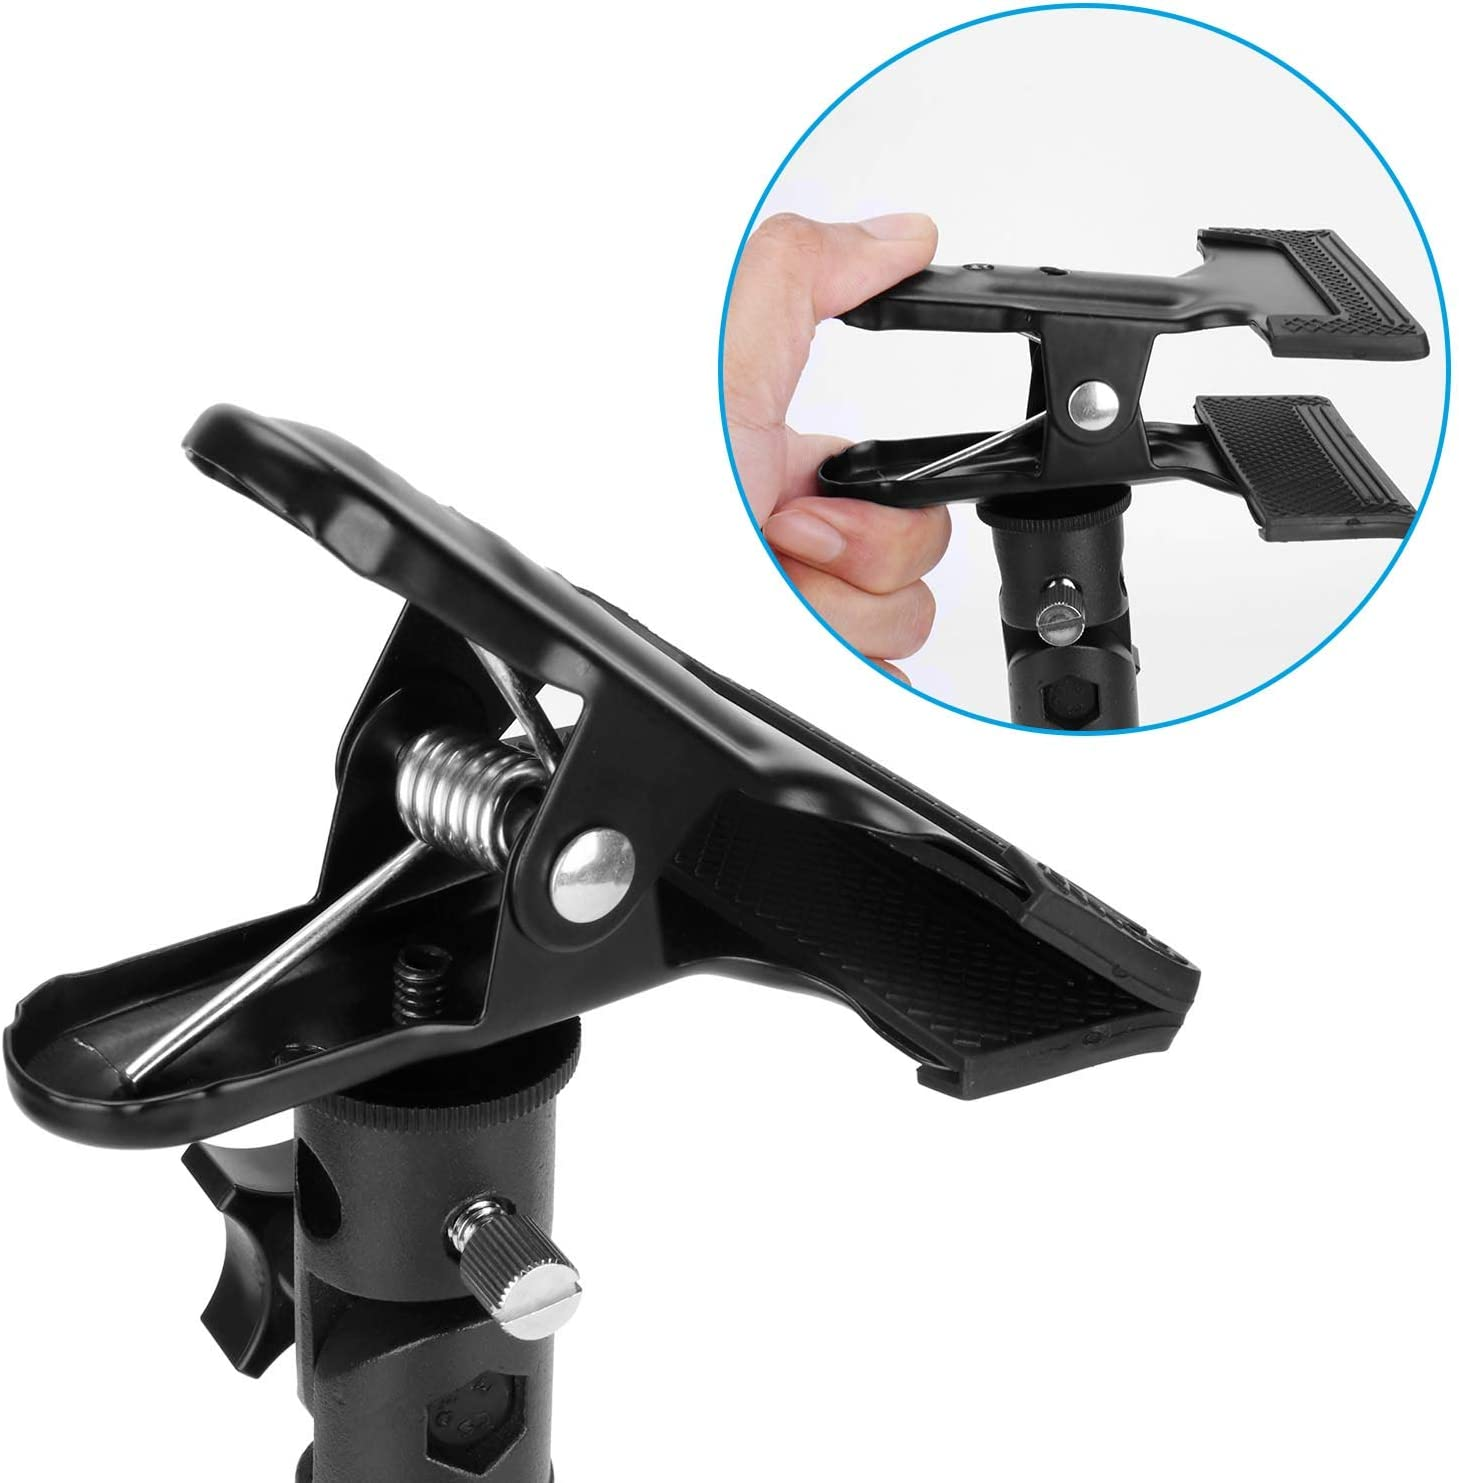 Light Stand Bracket and Photography Studio Heavy Duty Metal Clamp with Cold Shoe Adapter for Clamping Reflector or Mounting Speedlite Flash and Umbrella PEYOU Reflector Clamp Holder